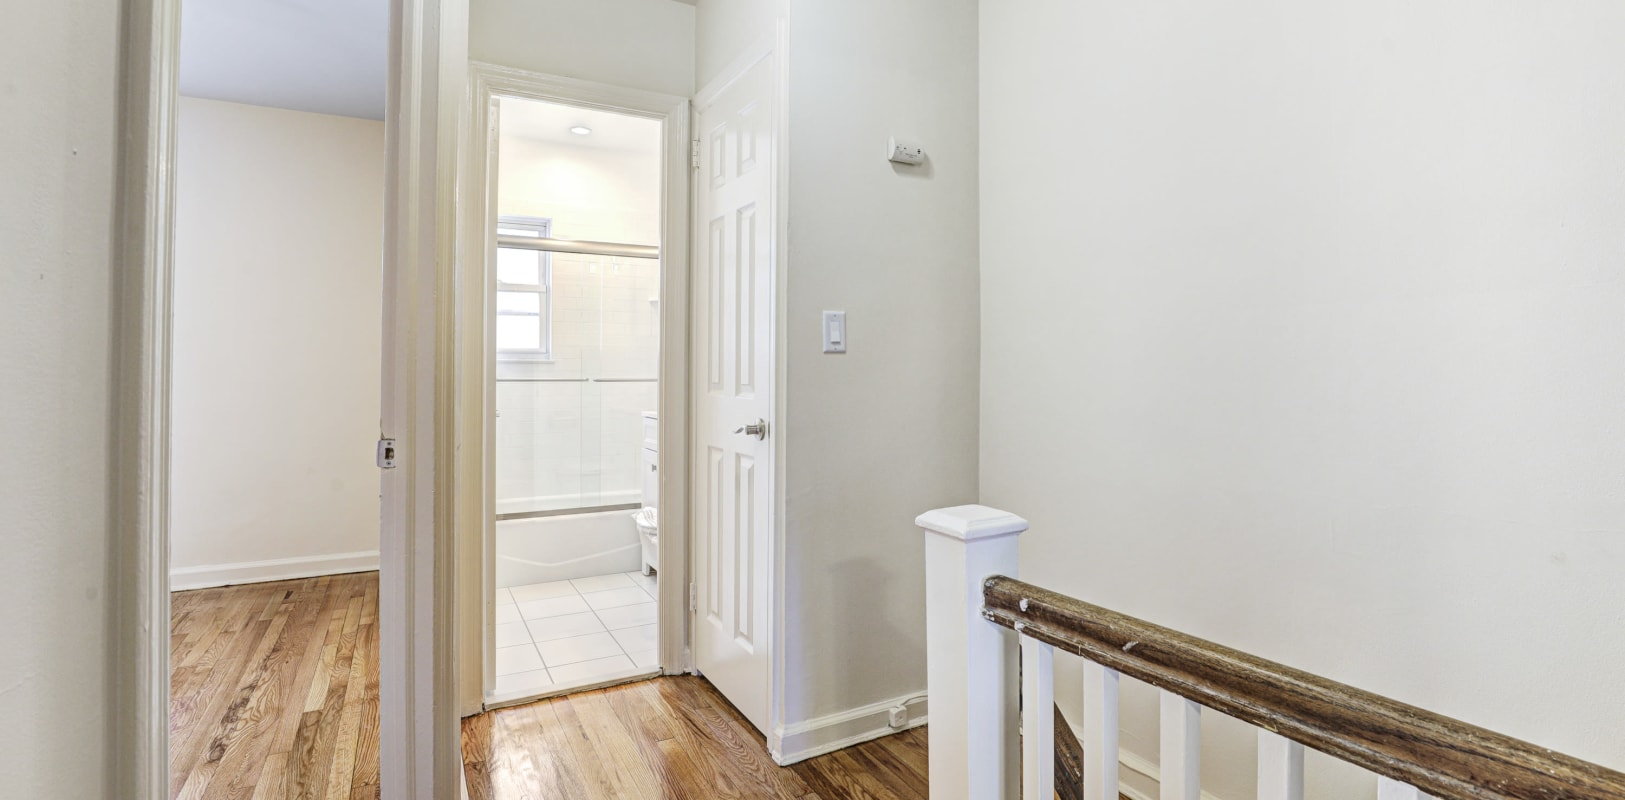 Upstairs bathroom with oval tub at General Wayne Townhomes and Ridgedale Gardens in Madison, New Jersey